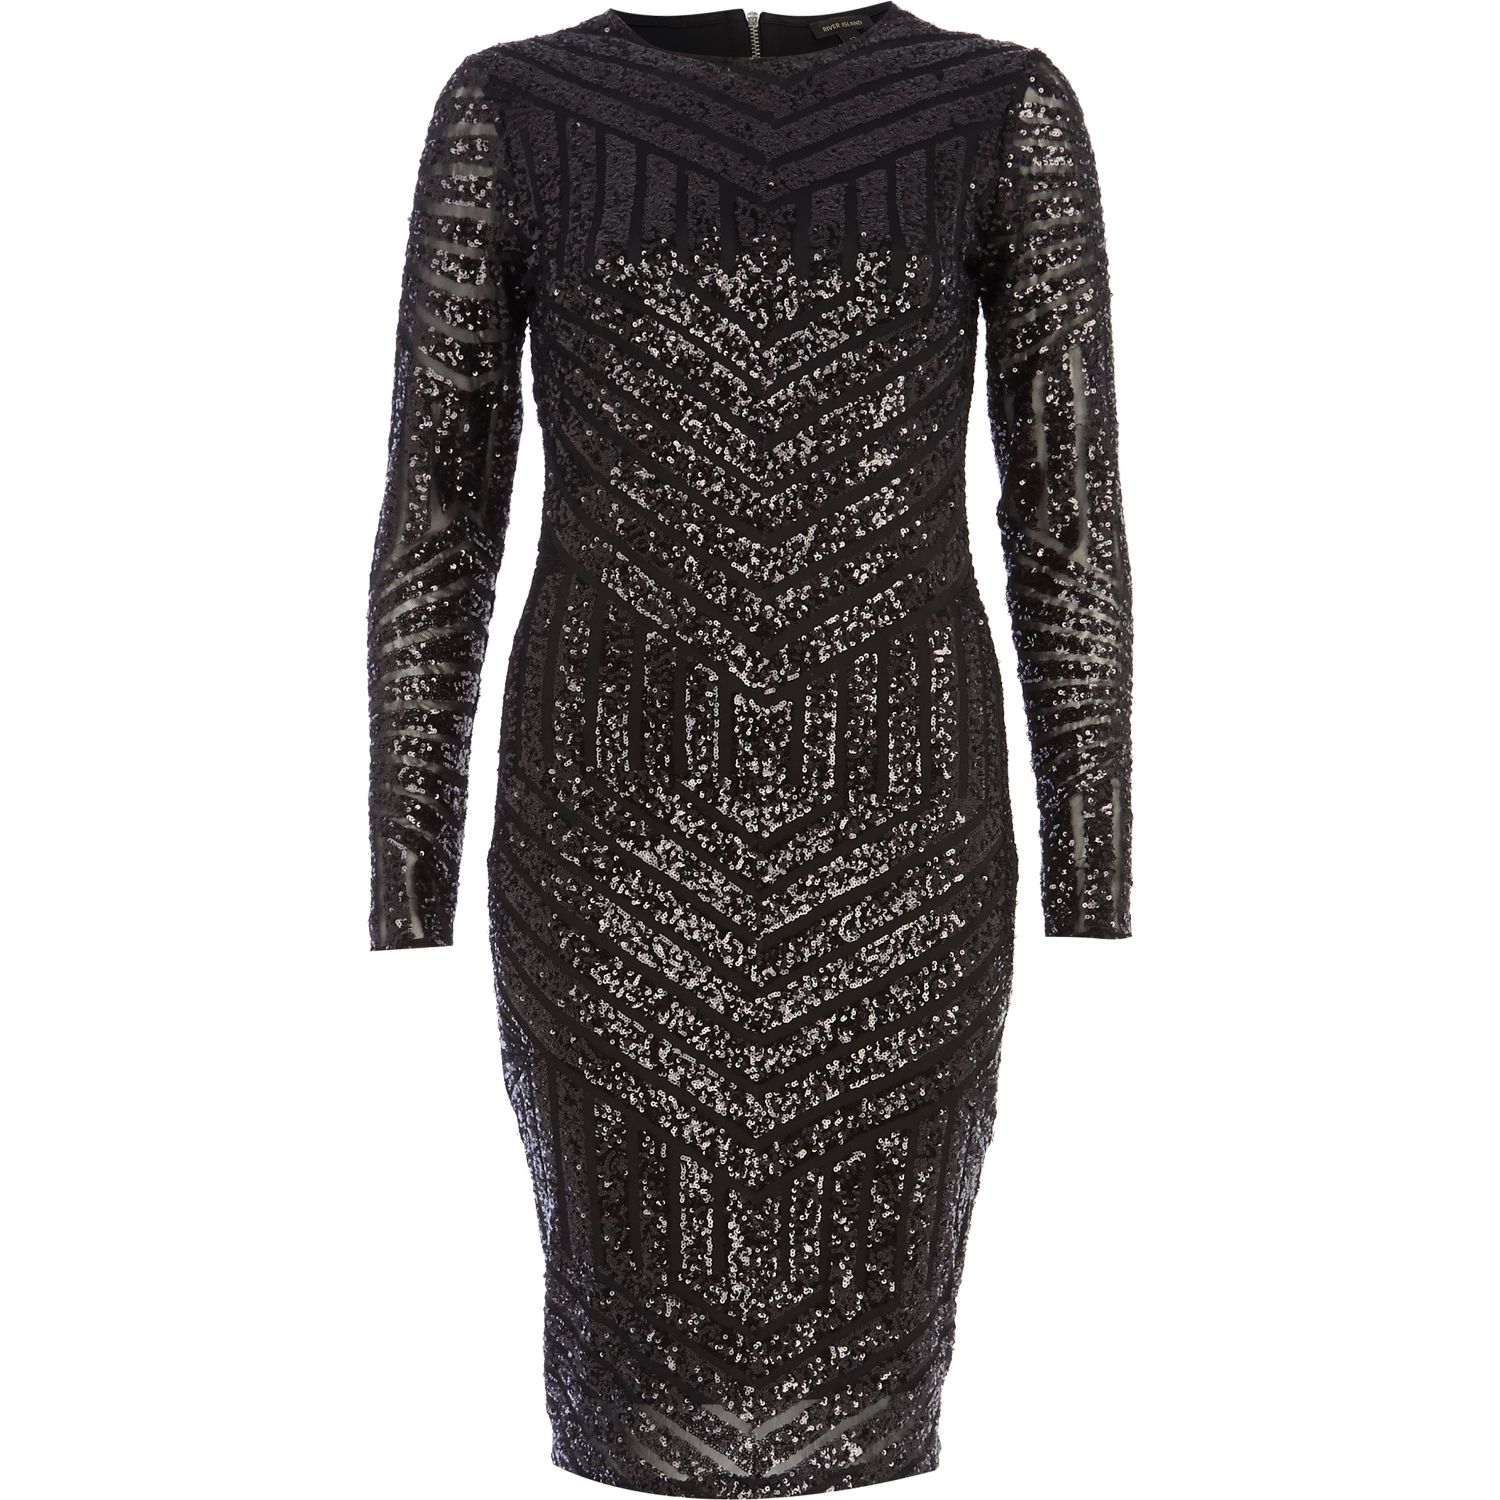 15eaf74079 black glitter dress river island – Little Black Dress | Black Lace ...